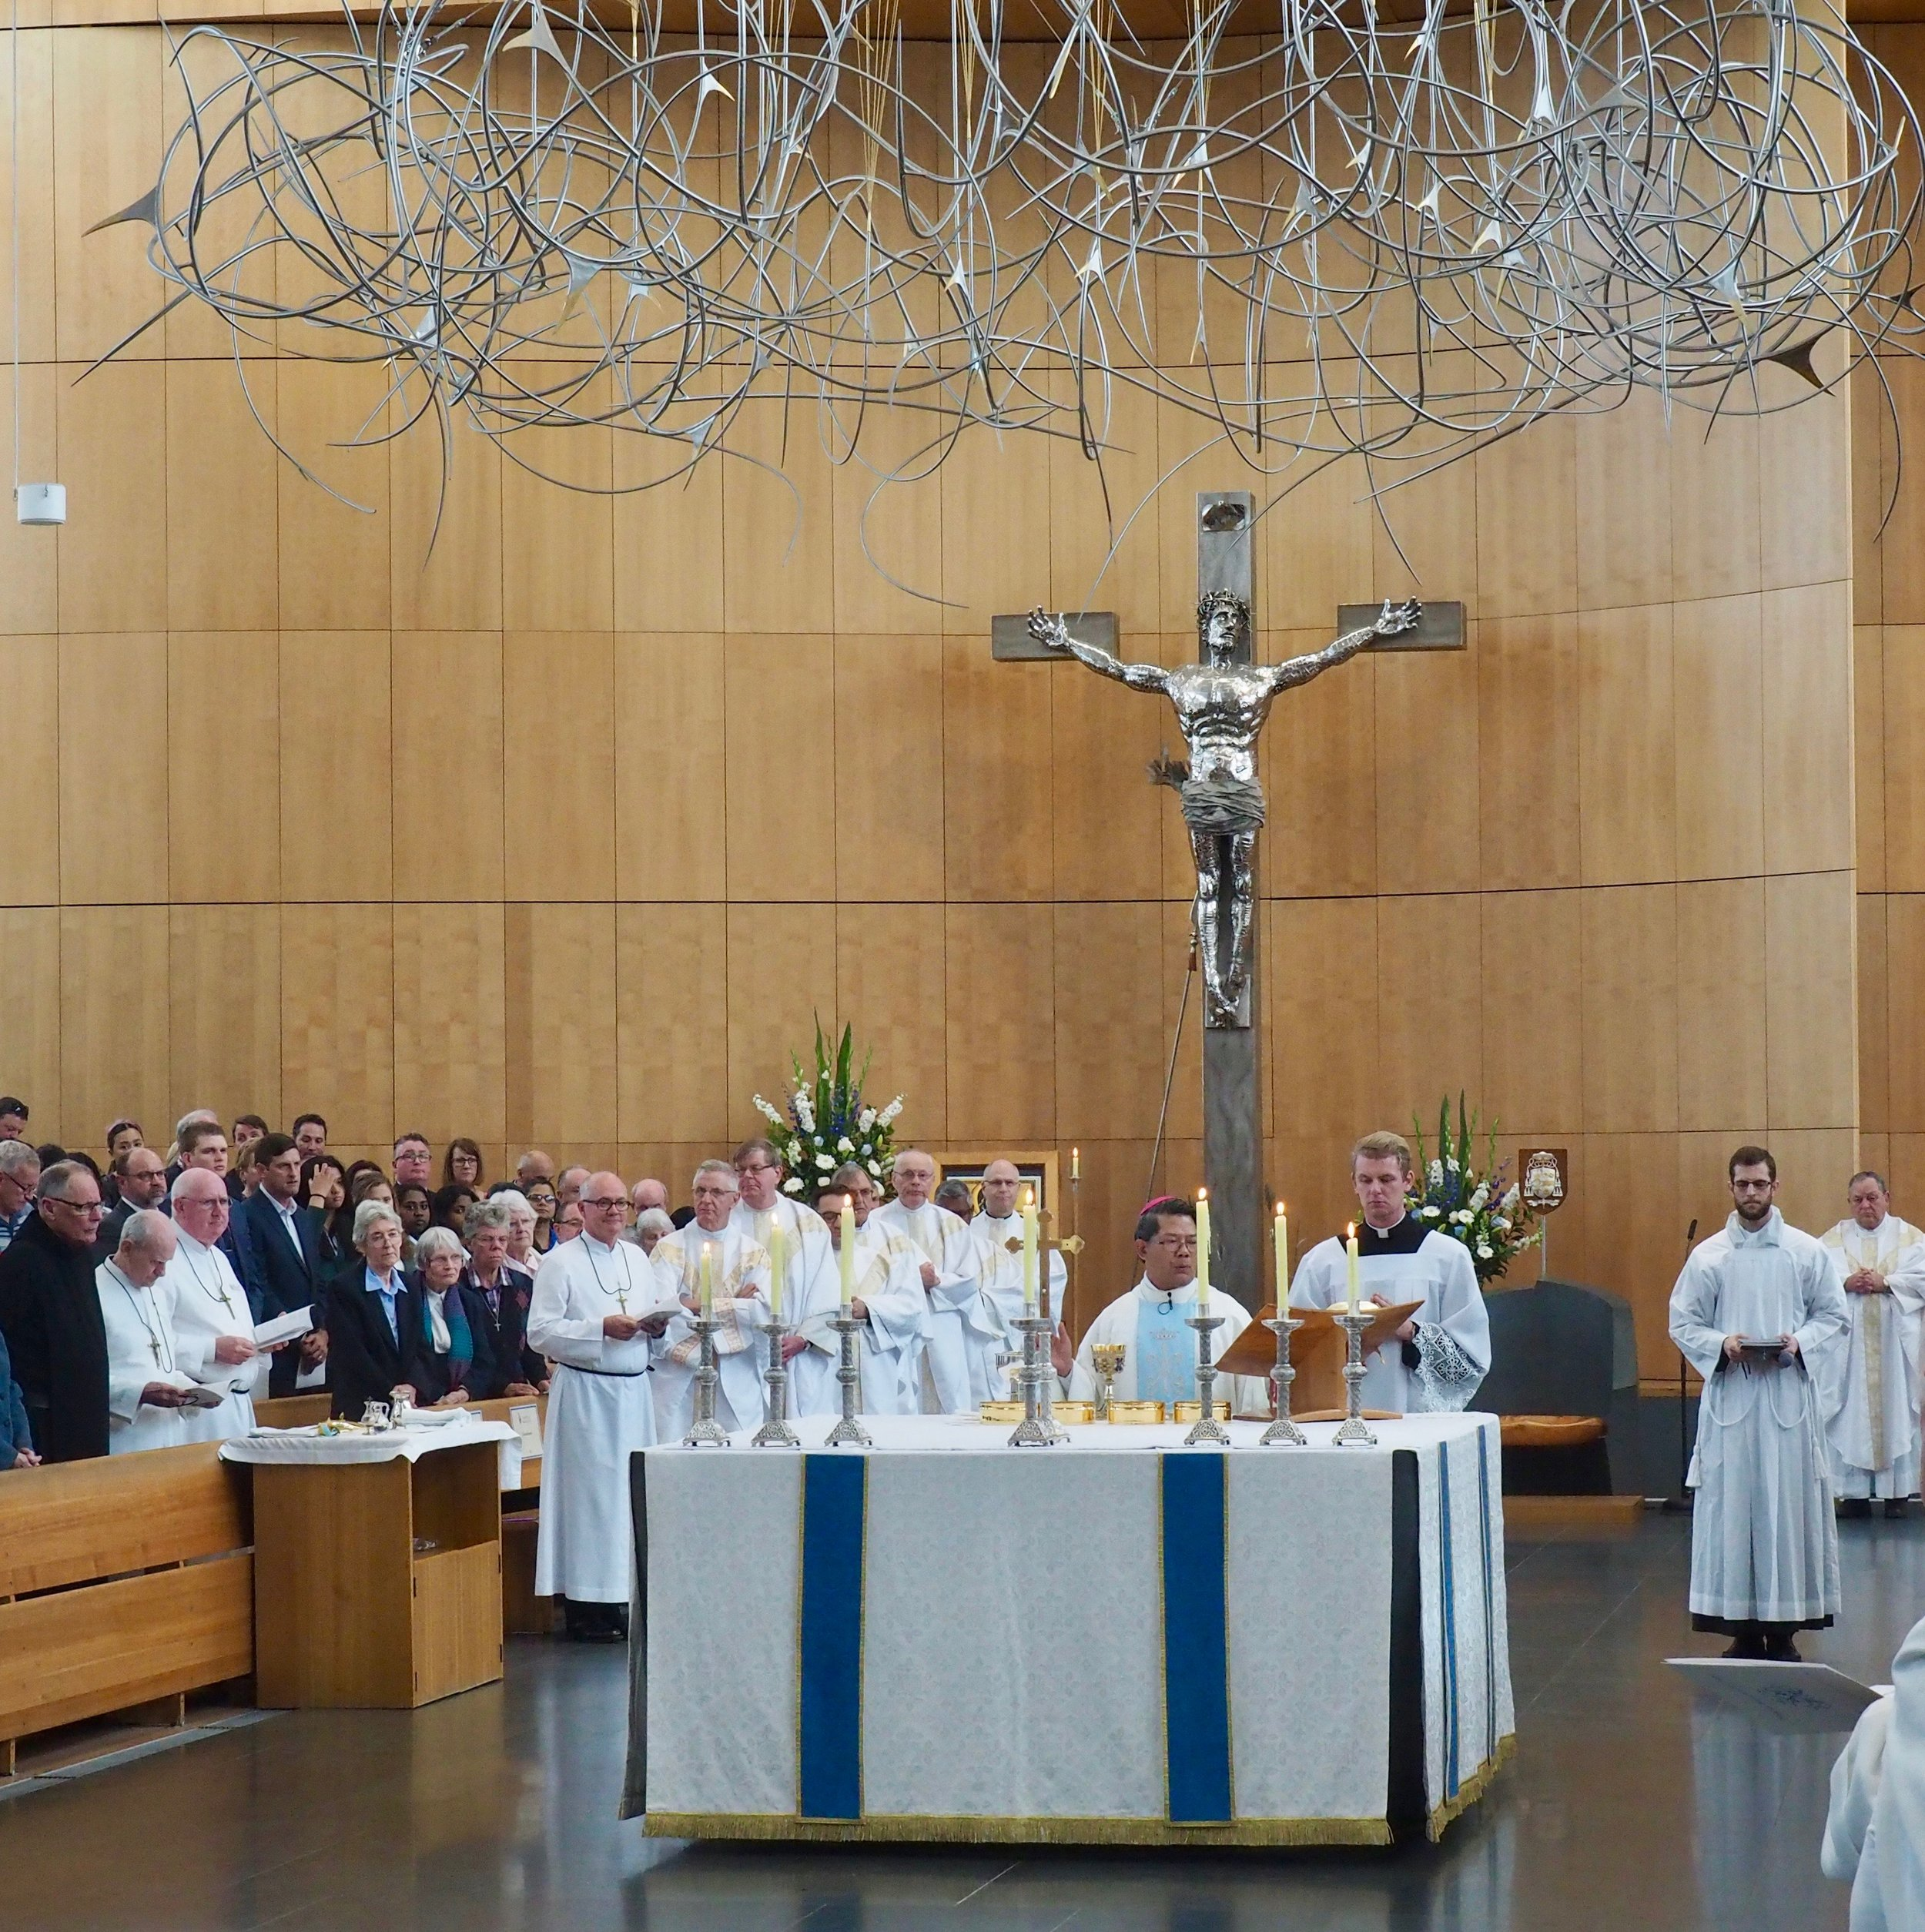 Bicentenary Mass Sydney 12 Aug 2017 Photos by Paul Harris 00035.jpg